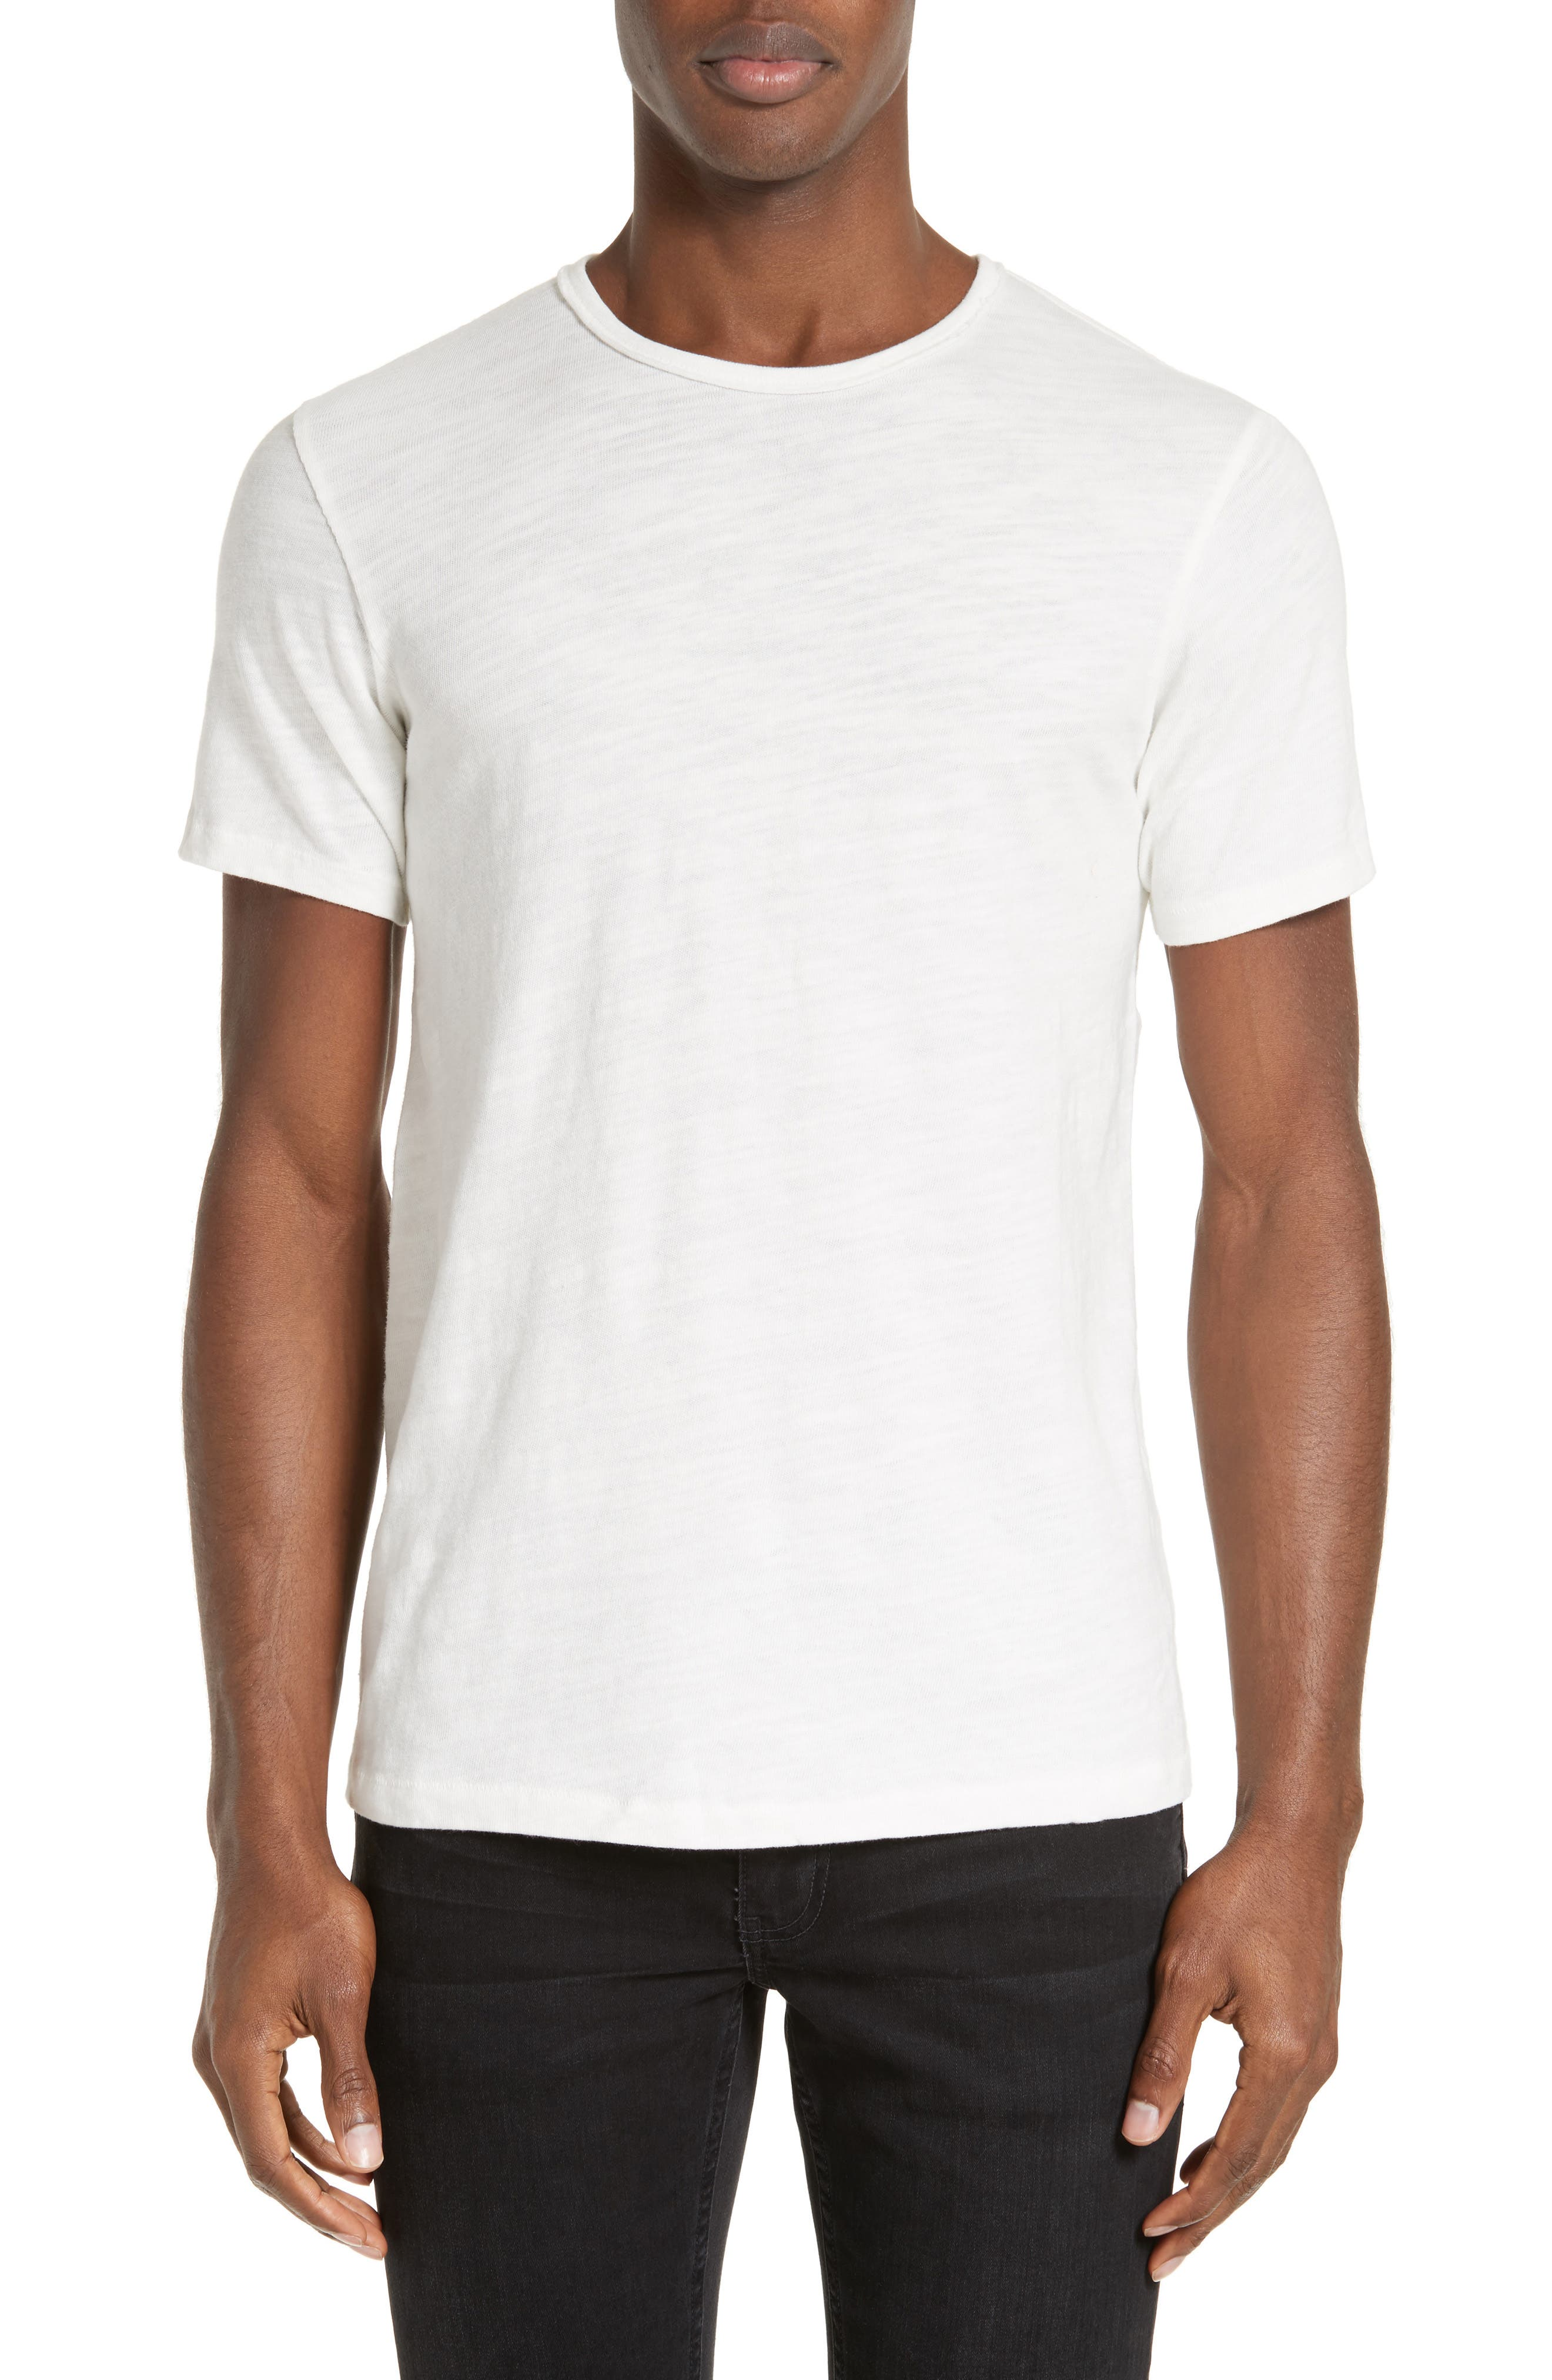 Alternate Image 1 Selected - rag & bone Standard Issue Slubbed Cotton T-Shirt